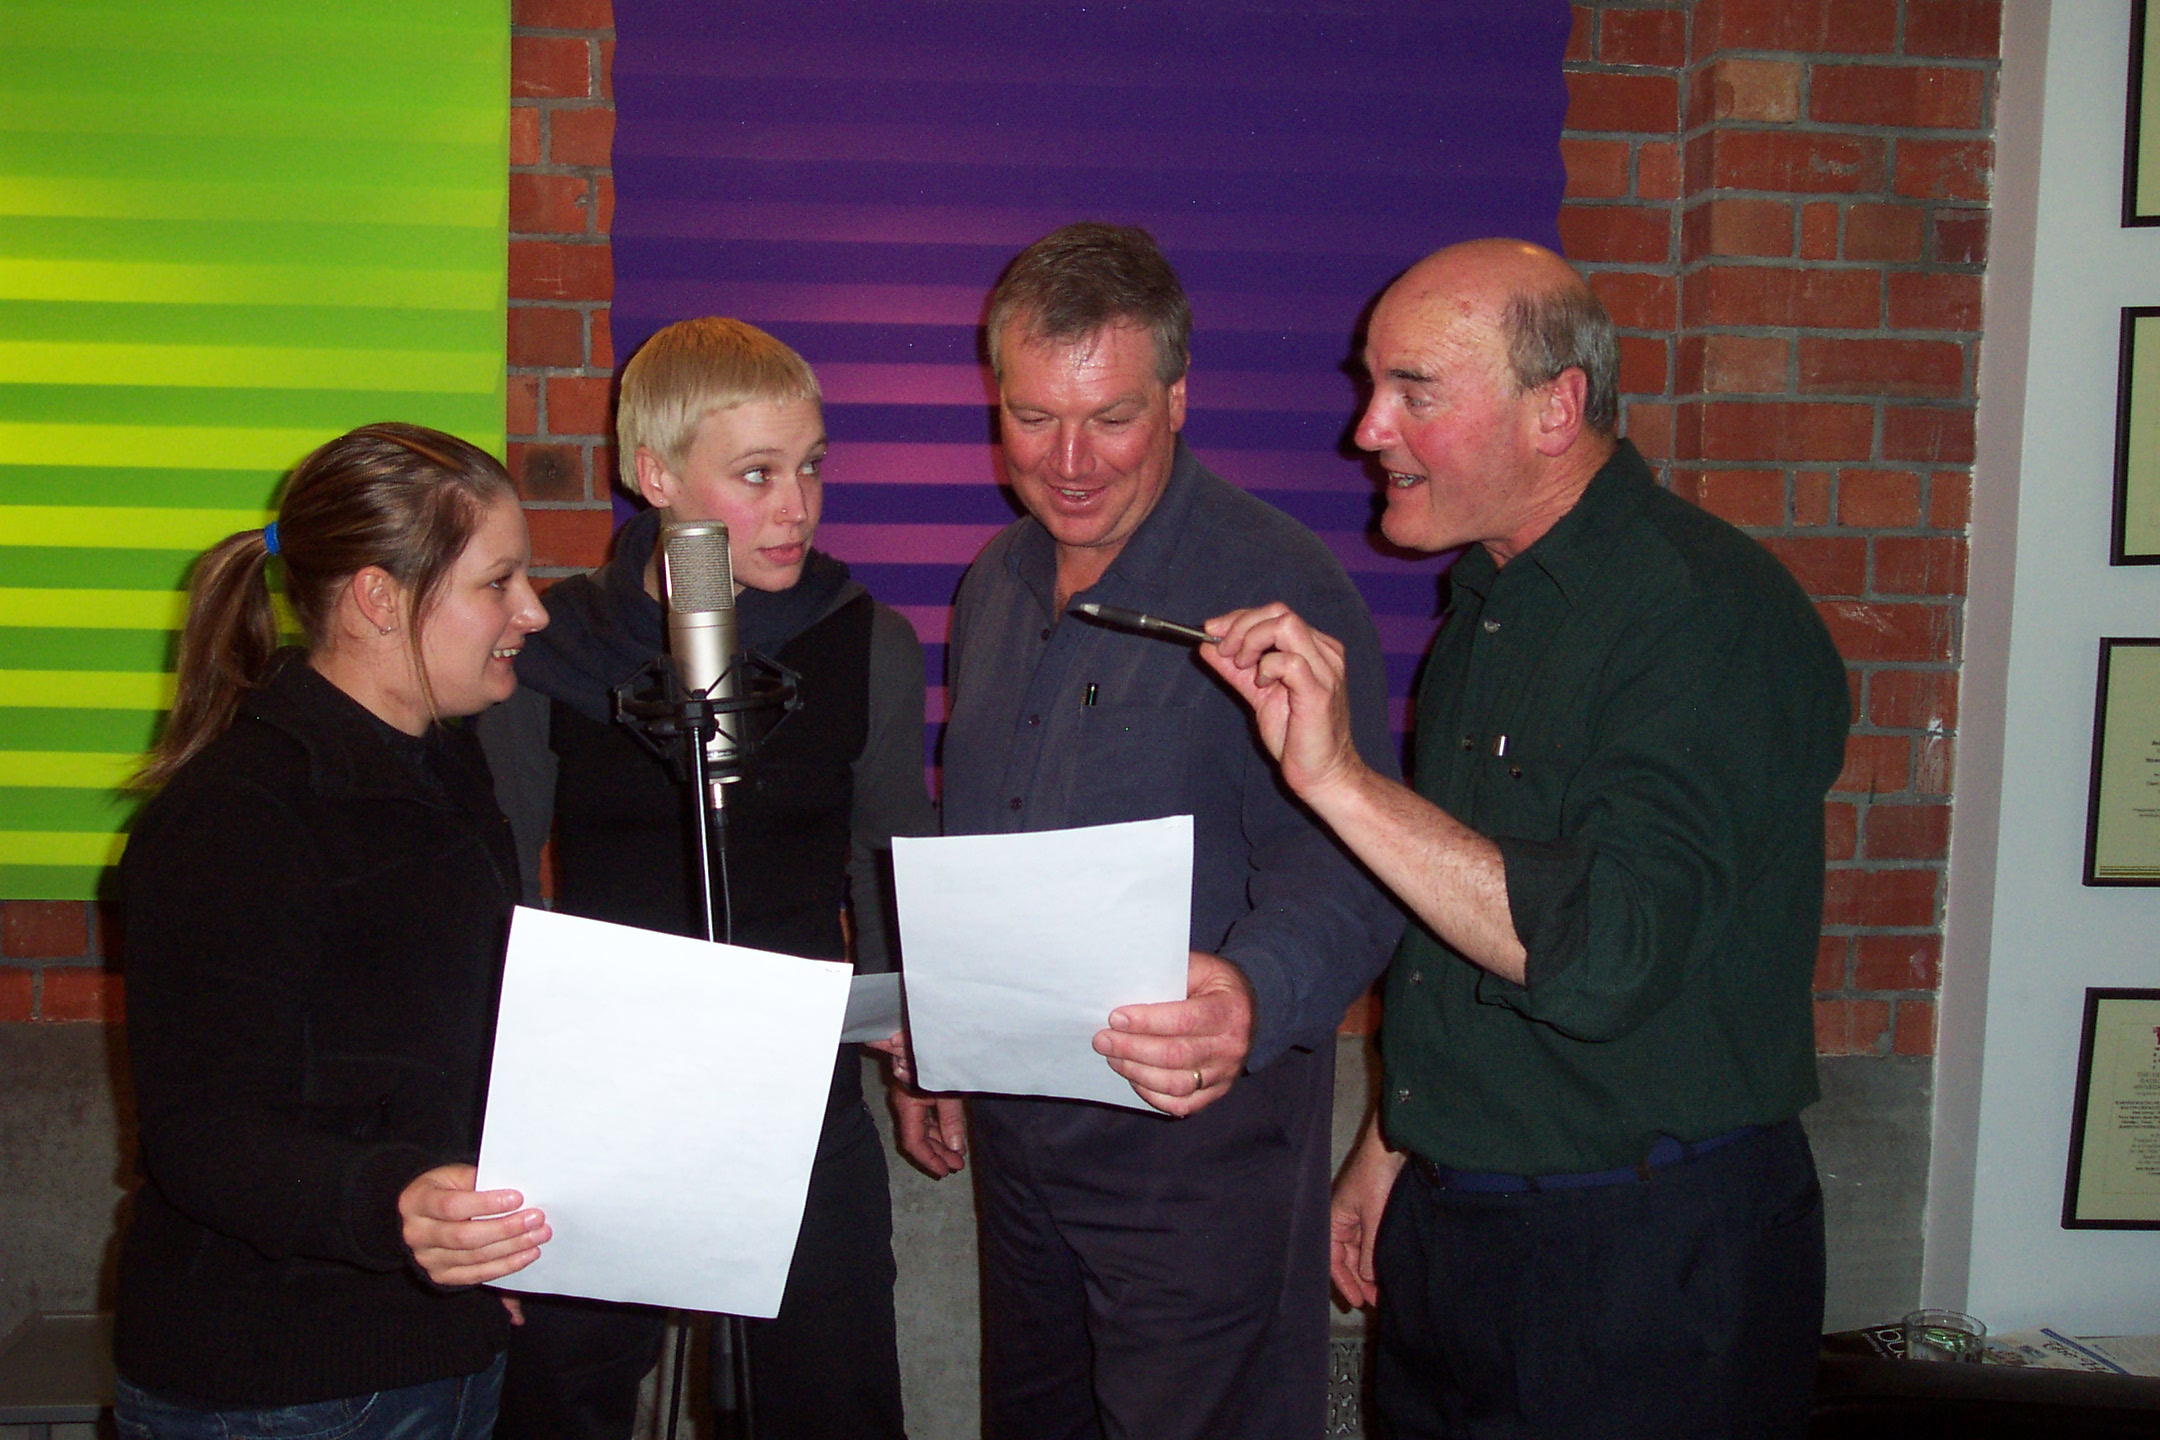 The very first Voice Academy in 2005, with Ron Rodger teaching voice acting